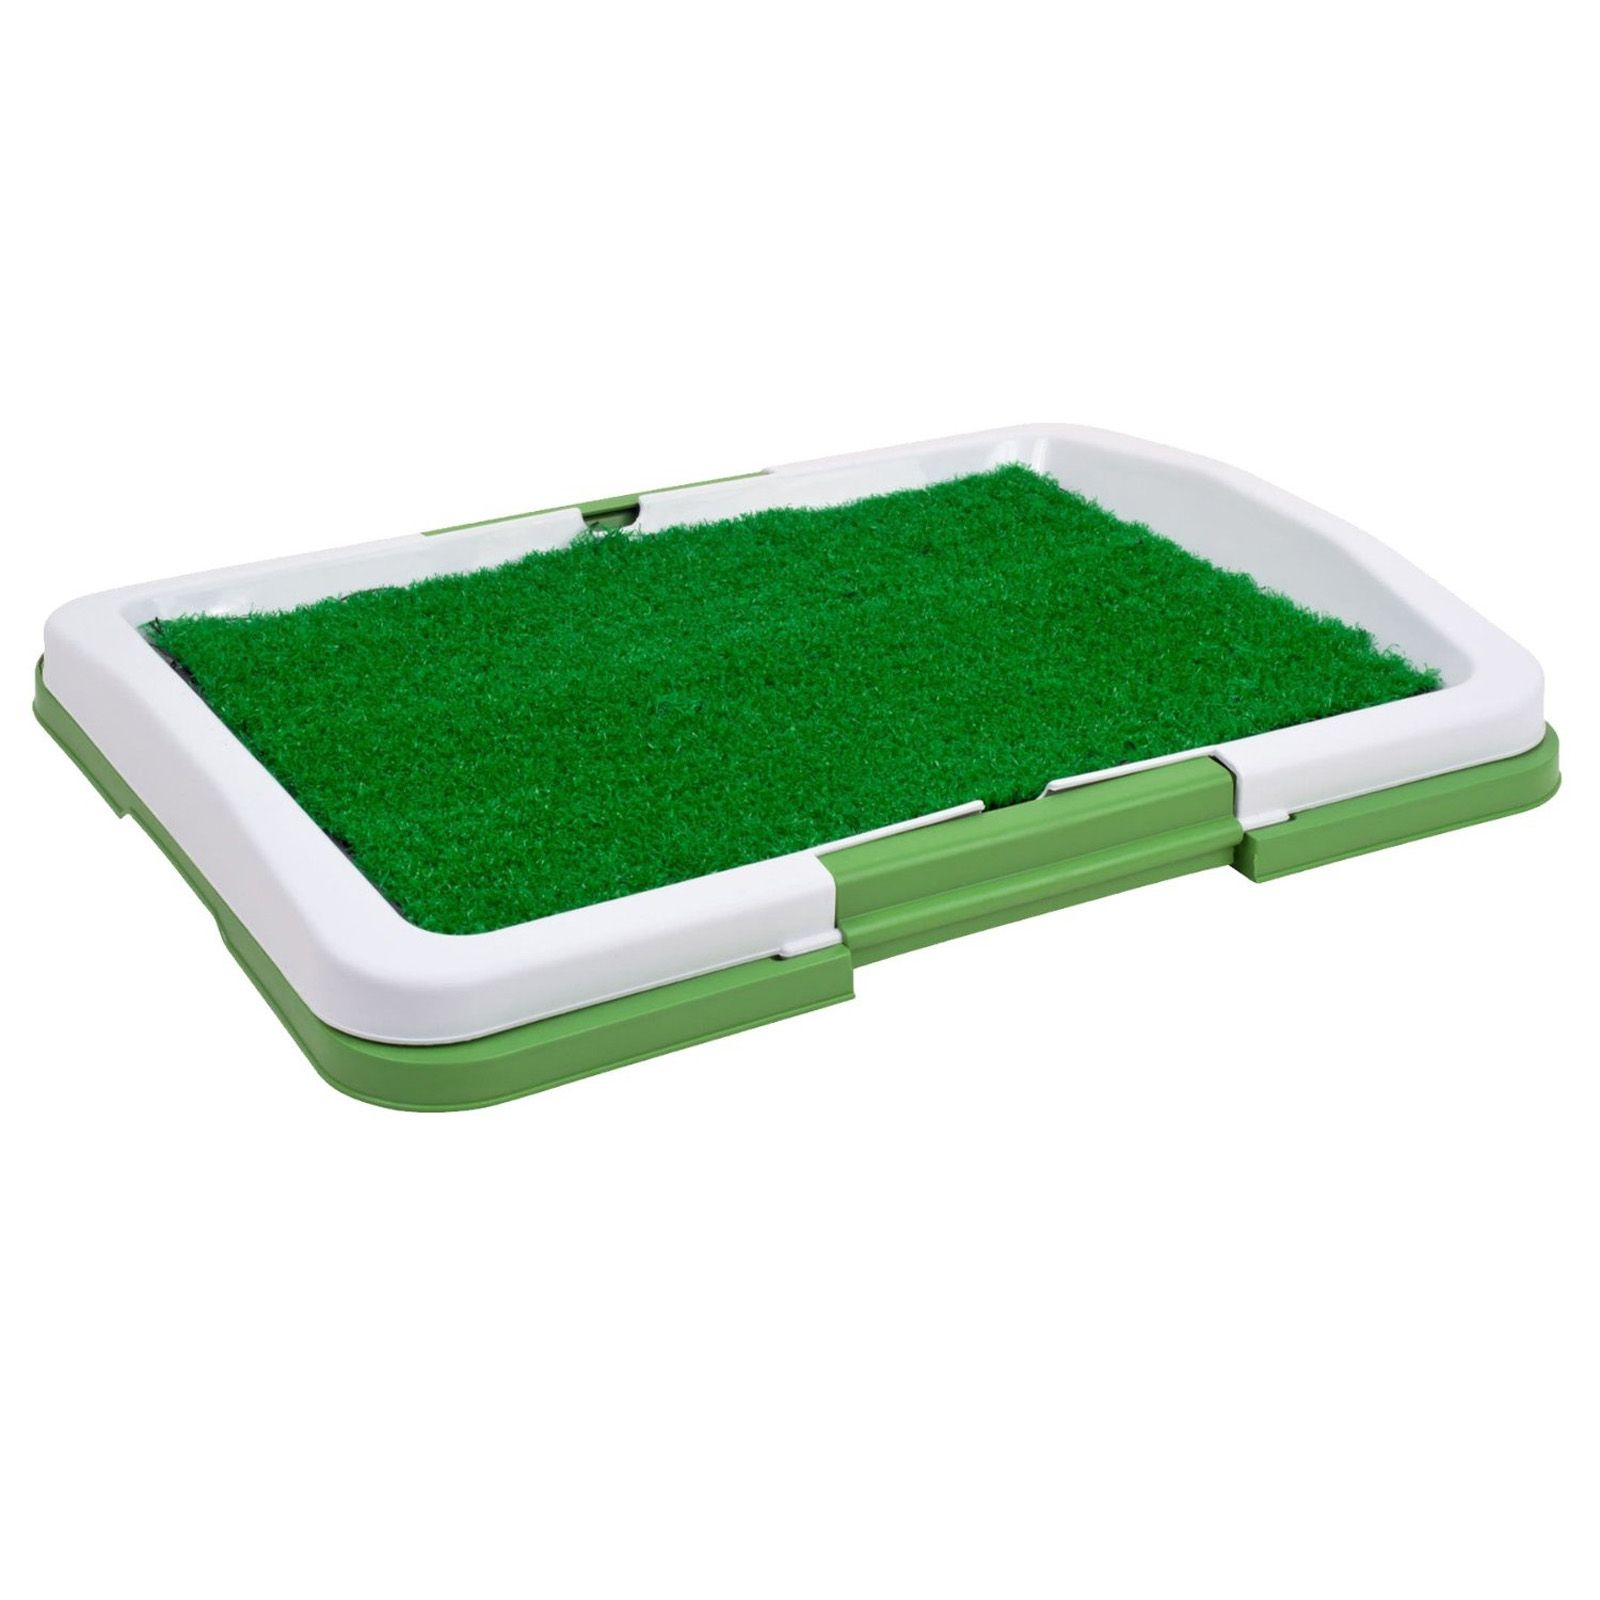 Total Vision Puppy Potty Trainer Indoor Grass Training Patch 3